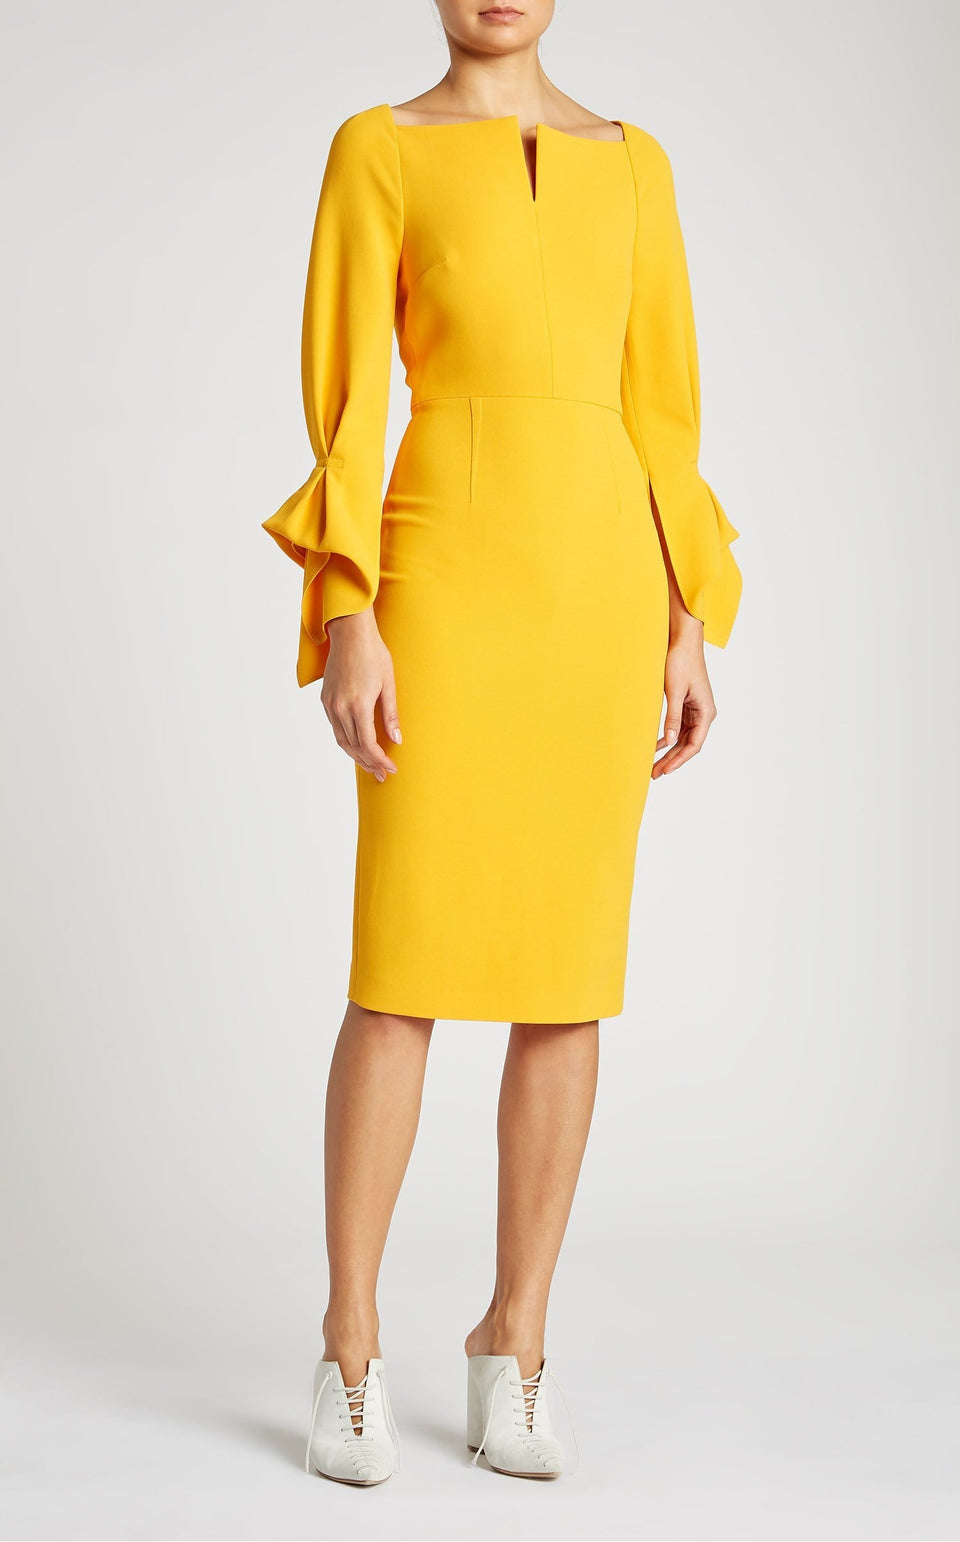 Rosslare Dress